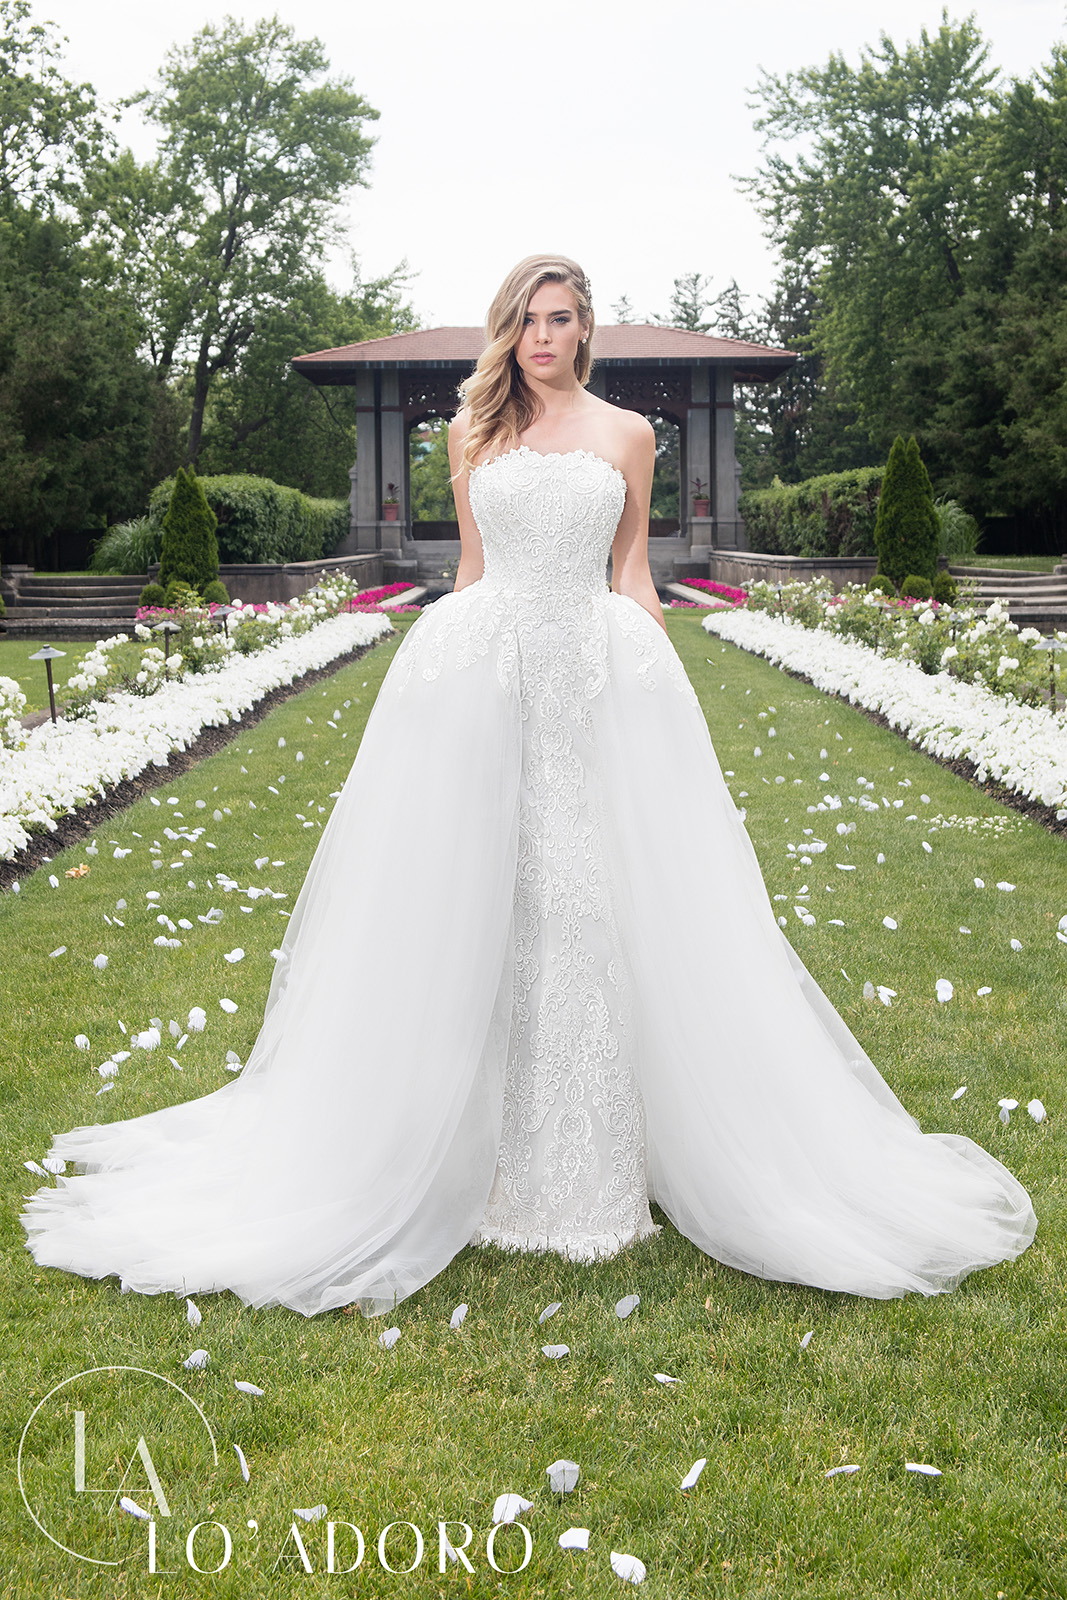 Strapless Skirt With Overlay Lo' Adoro Bridal in White Color